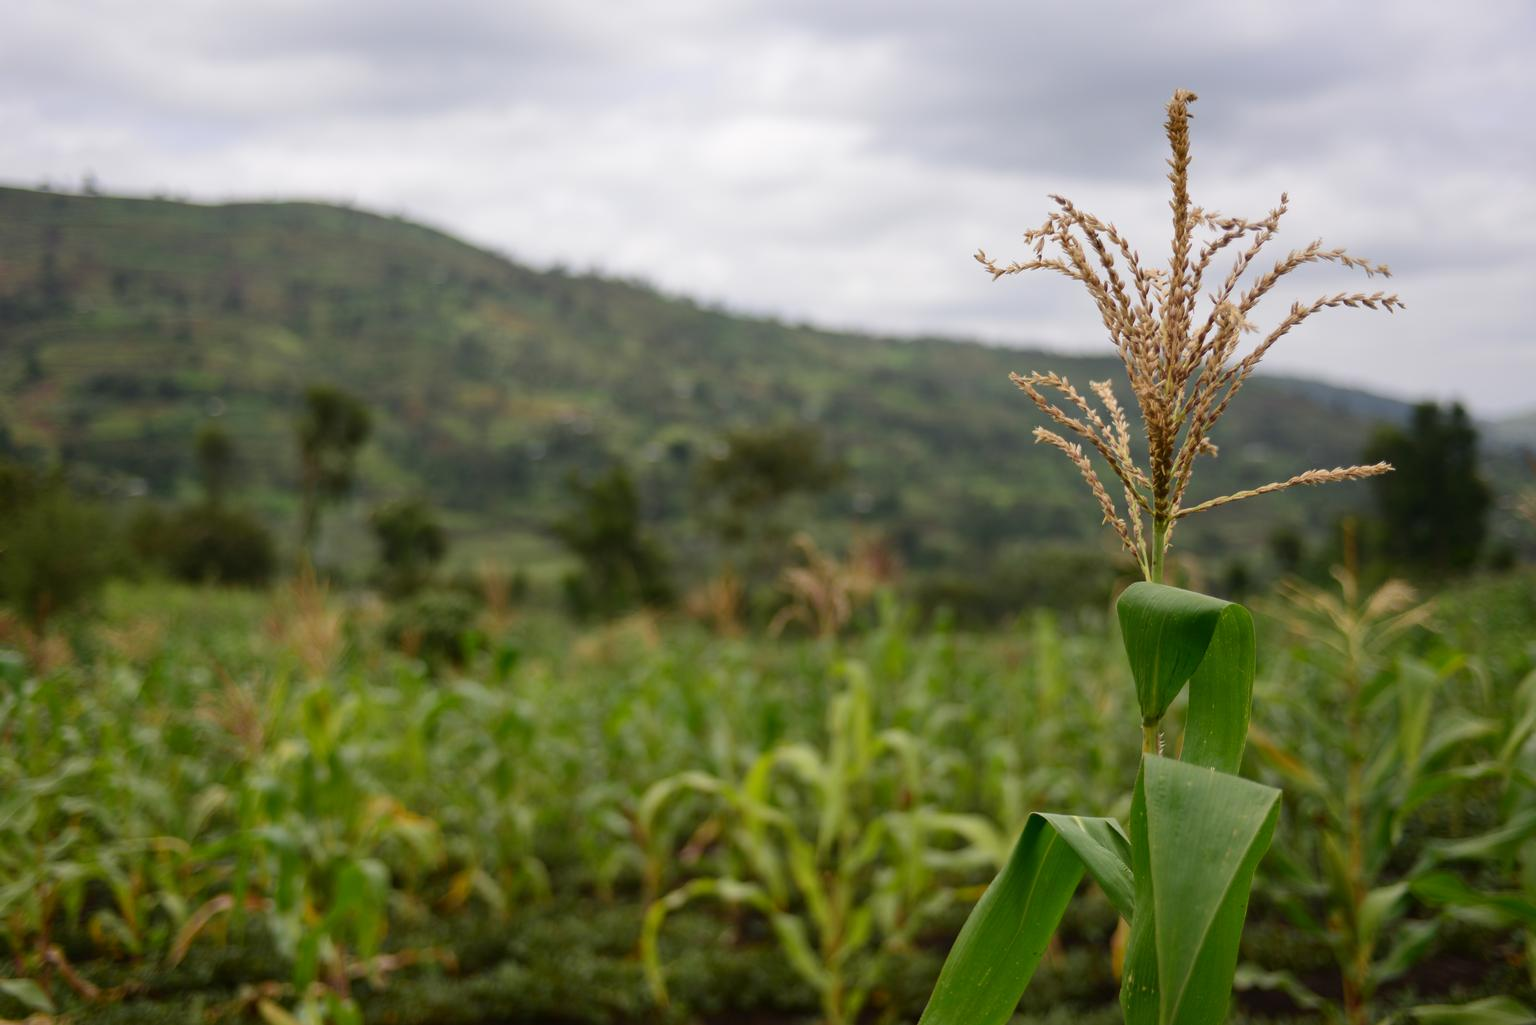 <p>Maize on a farm in Ethiopia, where the agriculture and power sectors can help each other develop. Photo by Nesbitt/UNICEF Ethiopia.</p>